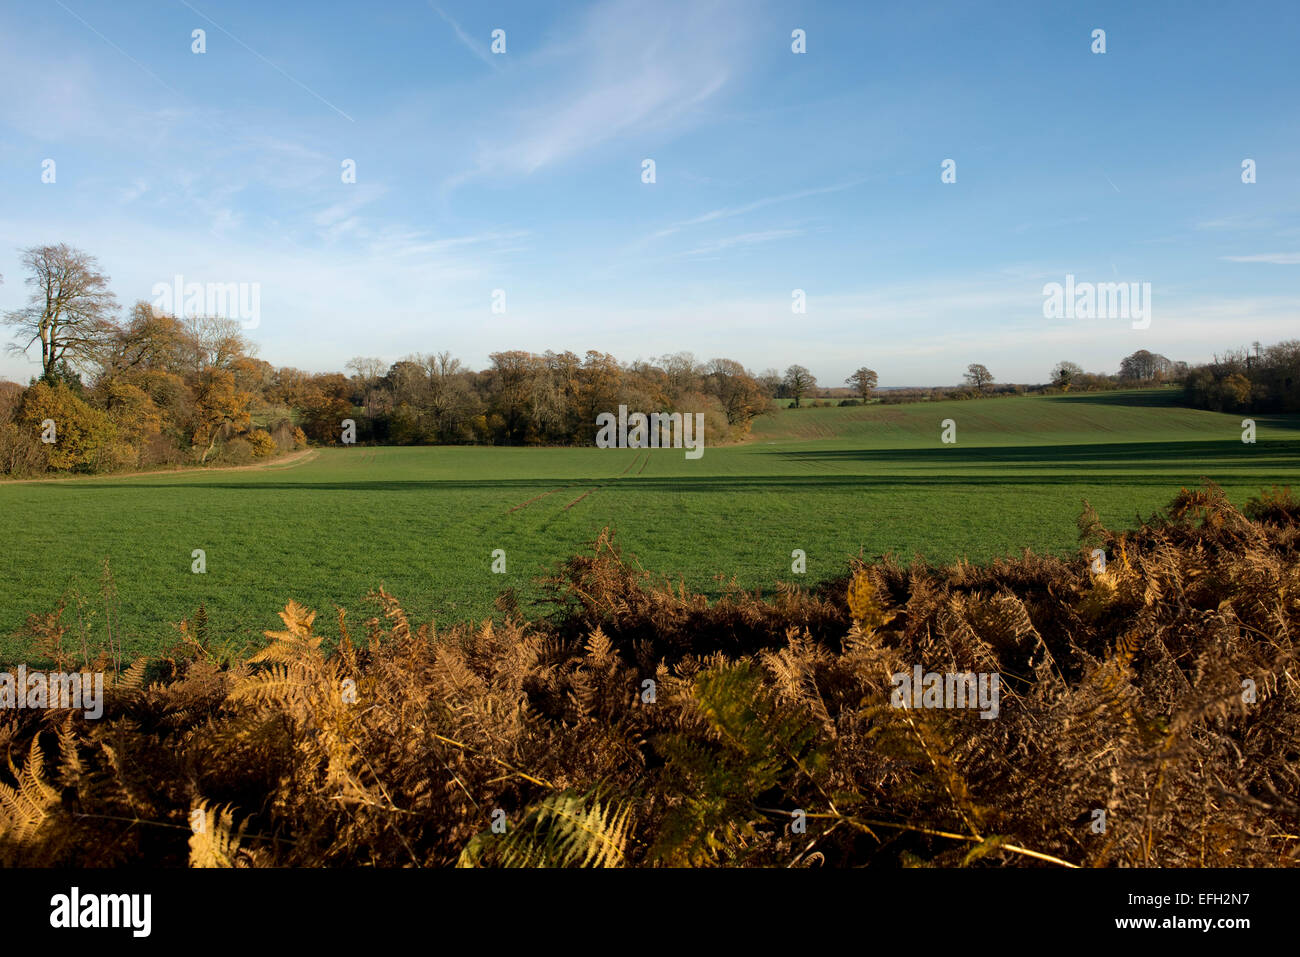 A young autumn crop of winter cereals on a fine day with blue sky and dry bracken in the foreground. Berkshire, - Stock Image